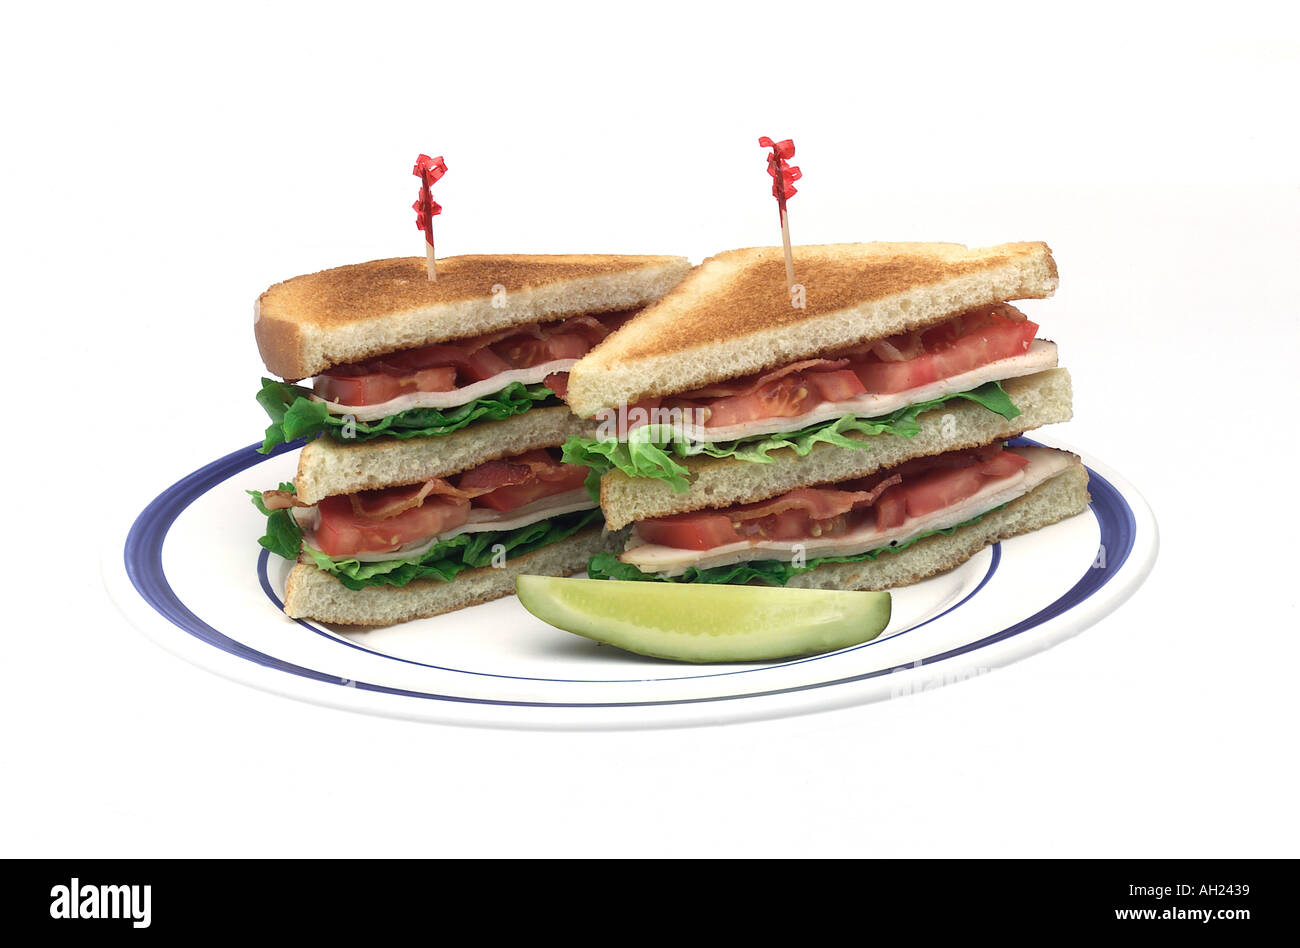 Club sandwich with a pickle on plate silhouetted on white background - Stock Image